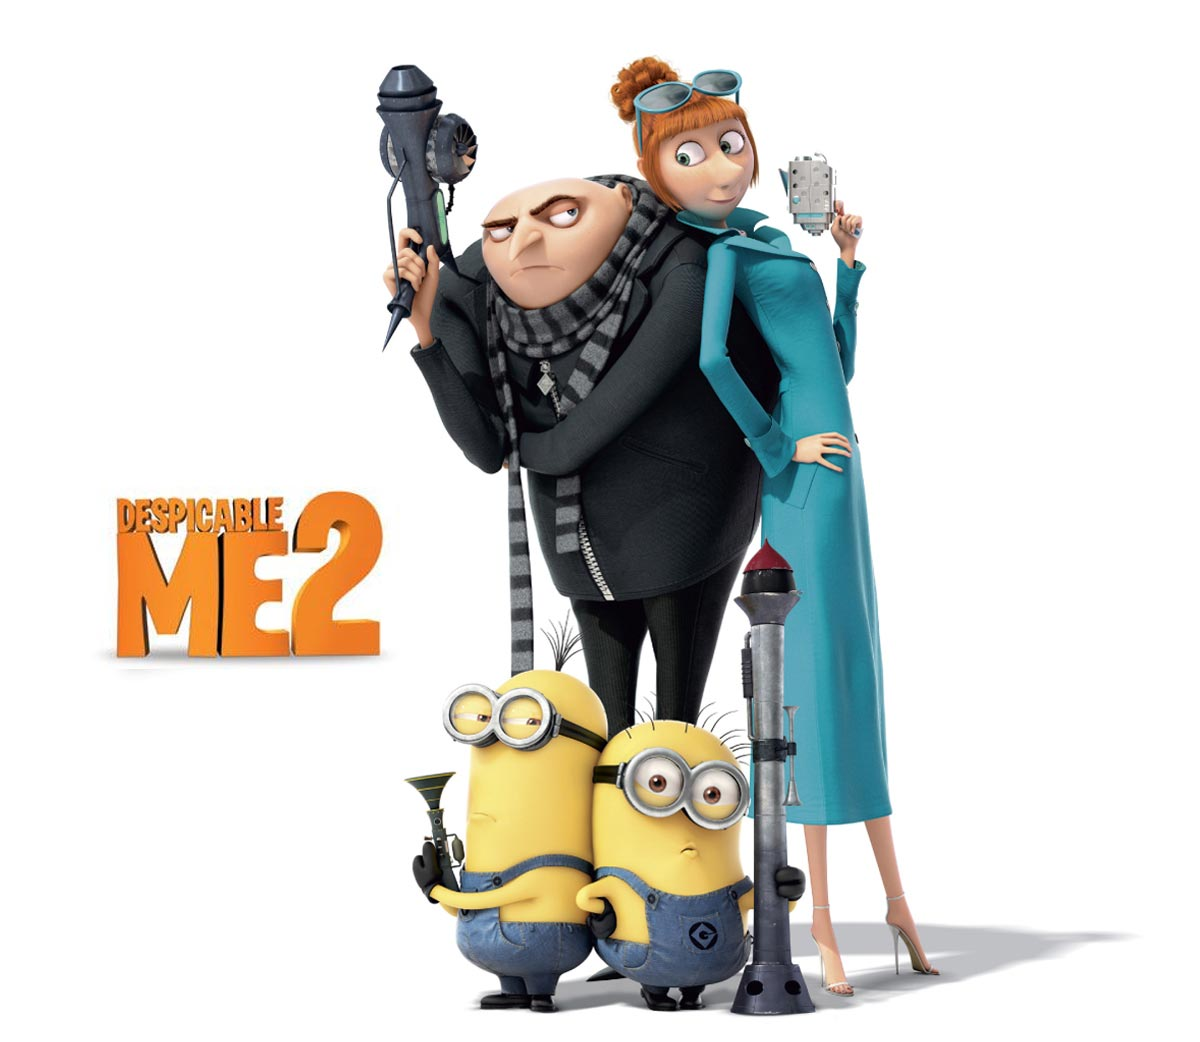 Despicable Me 2 2013 full animated movie watch online ...